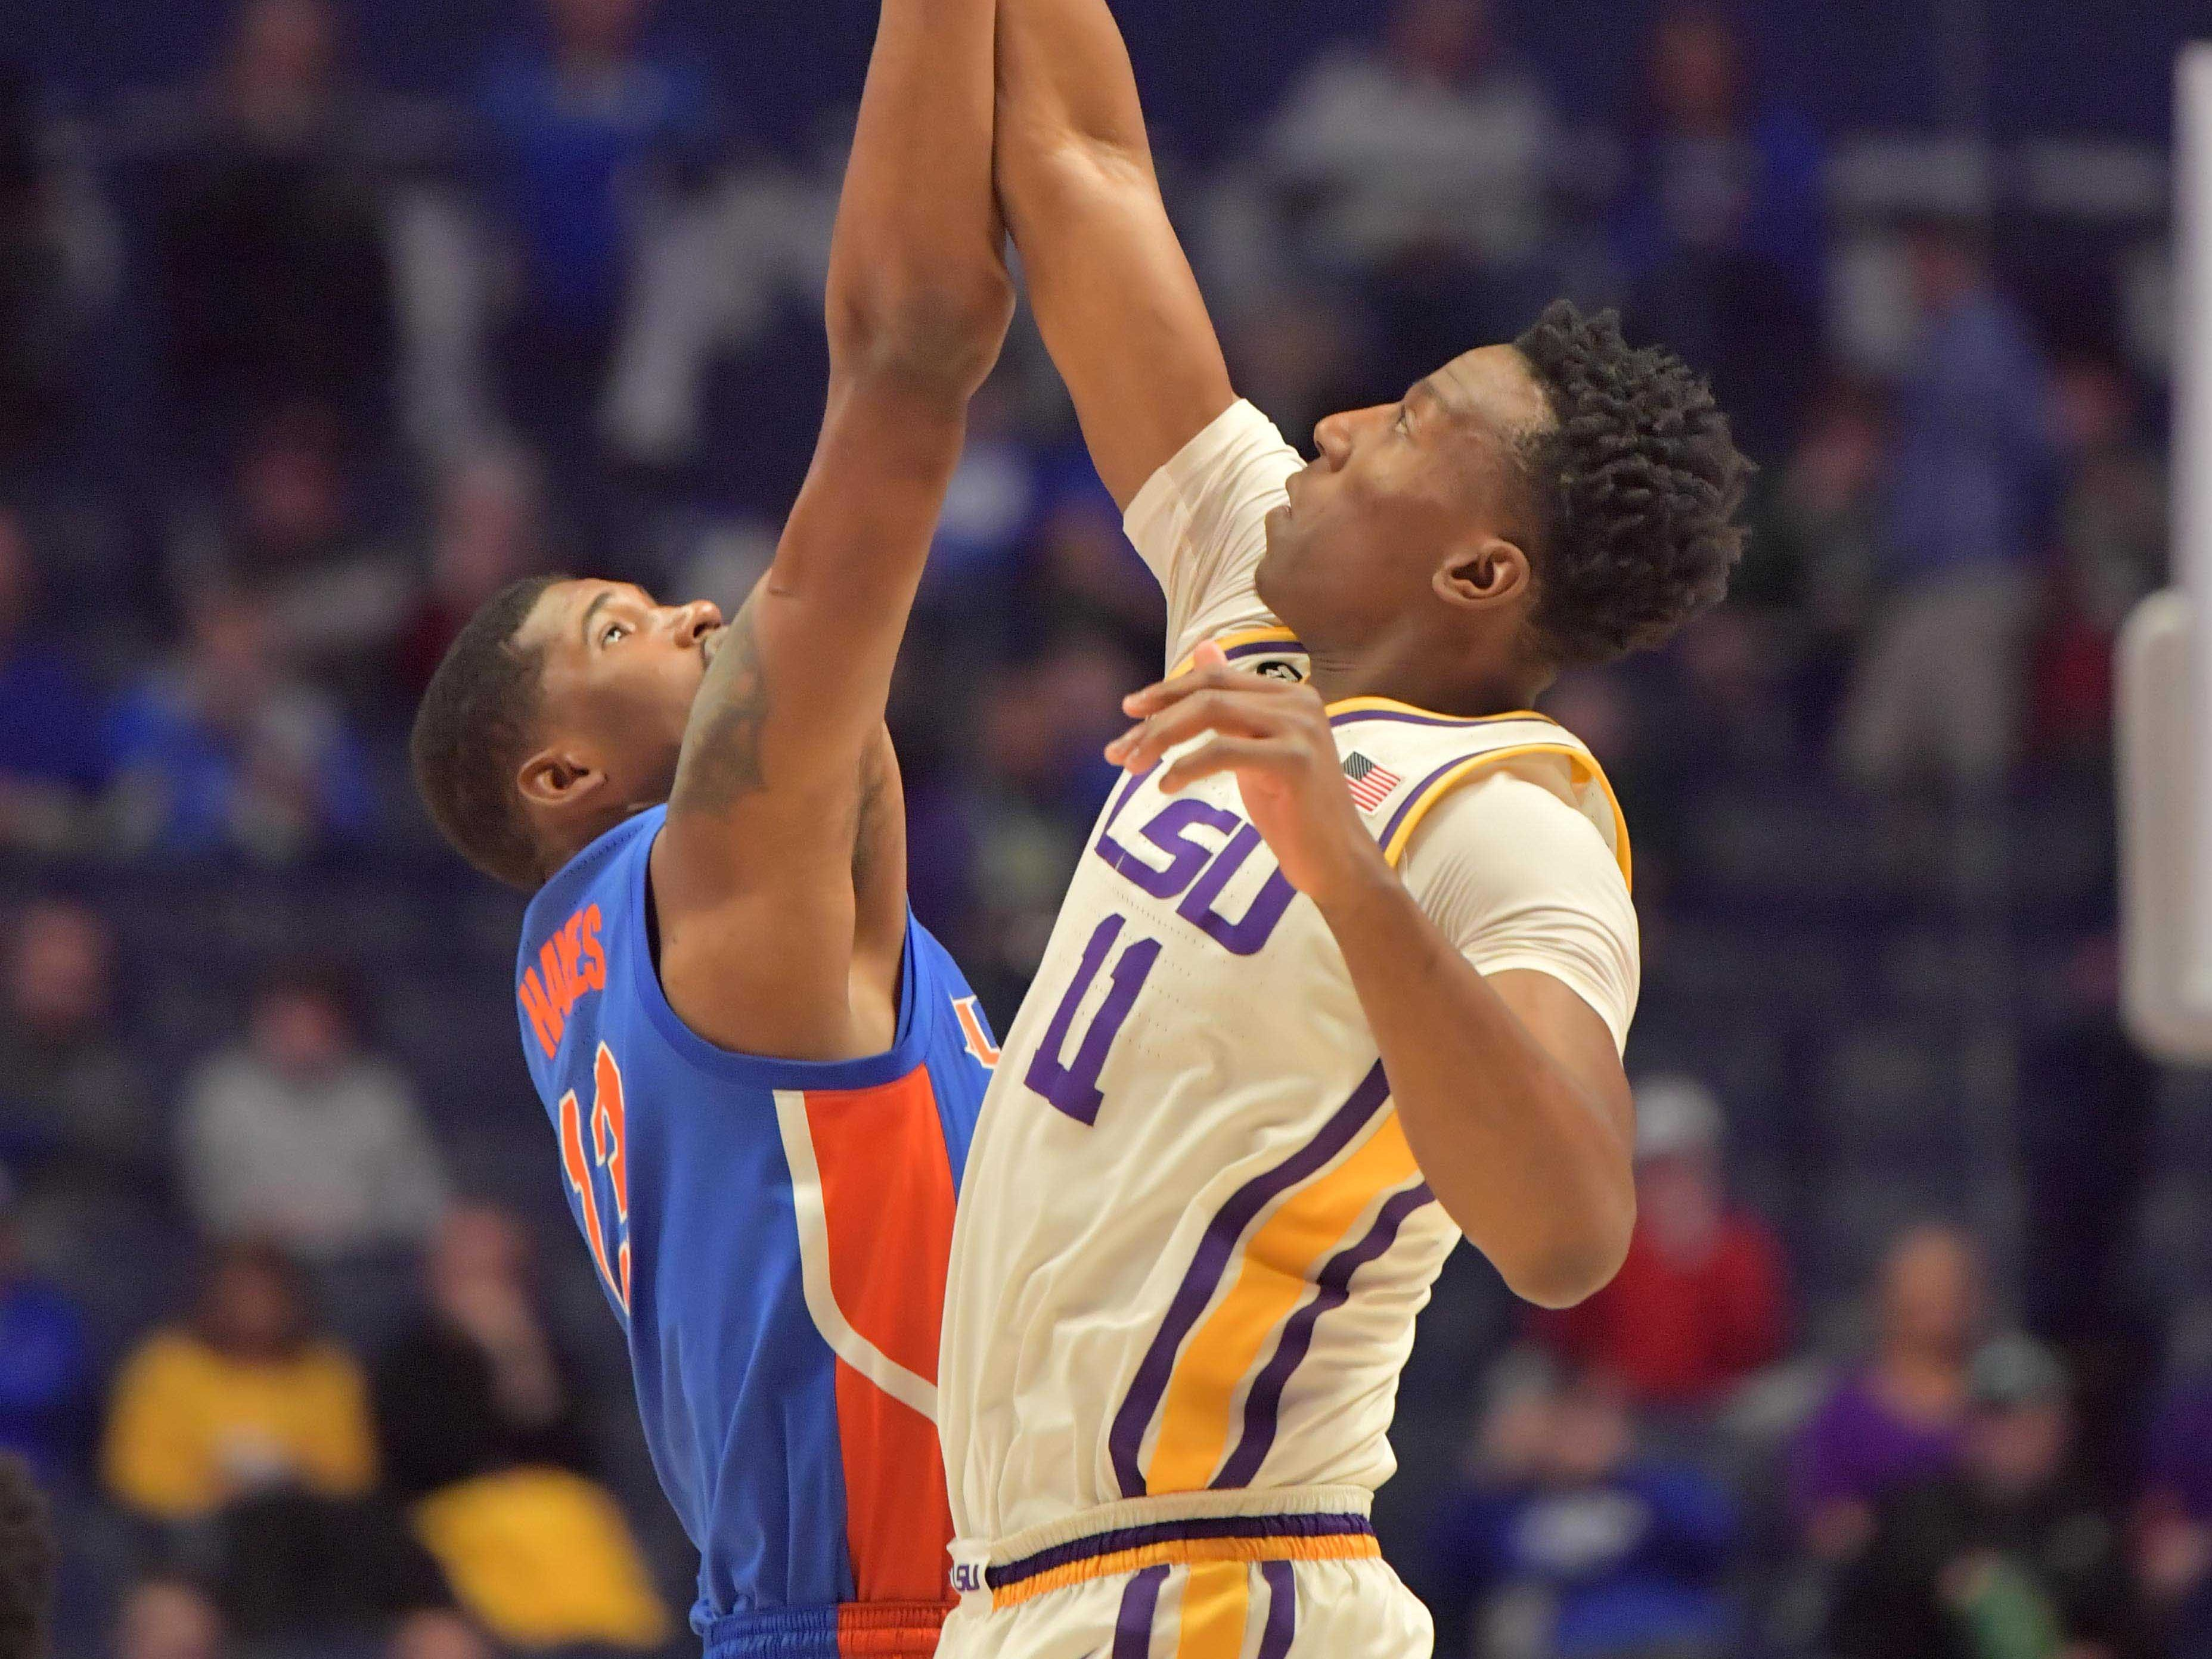 Mar 15, 2019; Nashville, TN, USA; LSU Tigers forward Kavell Bigby-Williams (11) reaches or the jump ball against Florida Gators center Kevarrius Hayes (13) during the first half of game seven in the SEC conference tournament at Bridgestone Arena. Mandatory Credit: Jim Brown-USA TODAY Sports